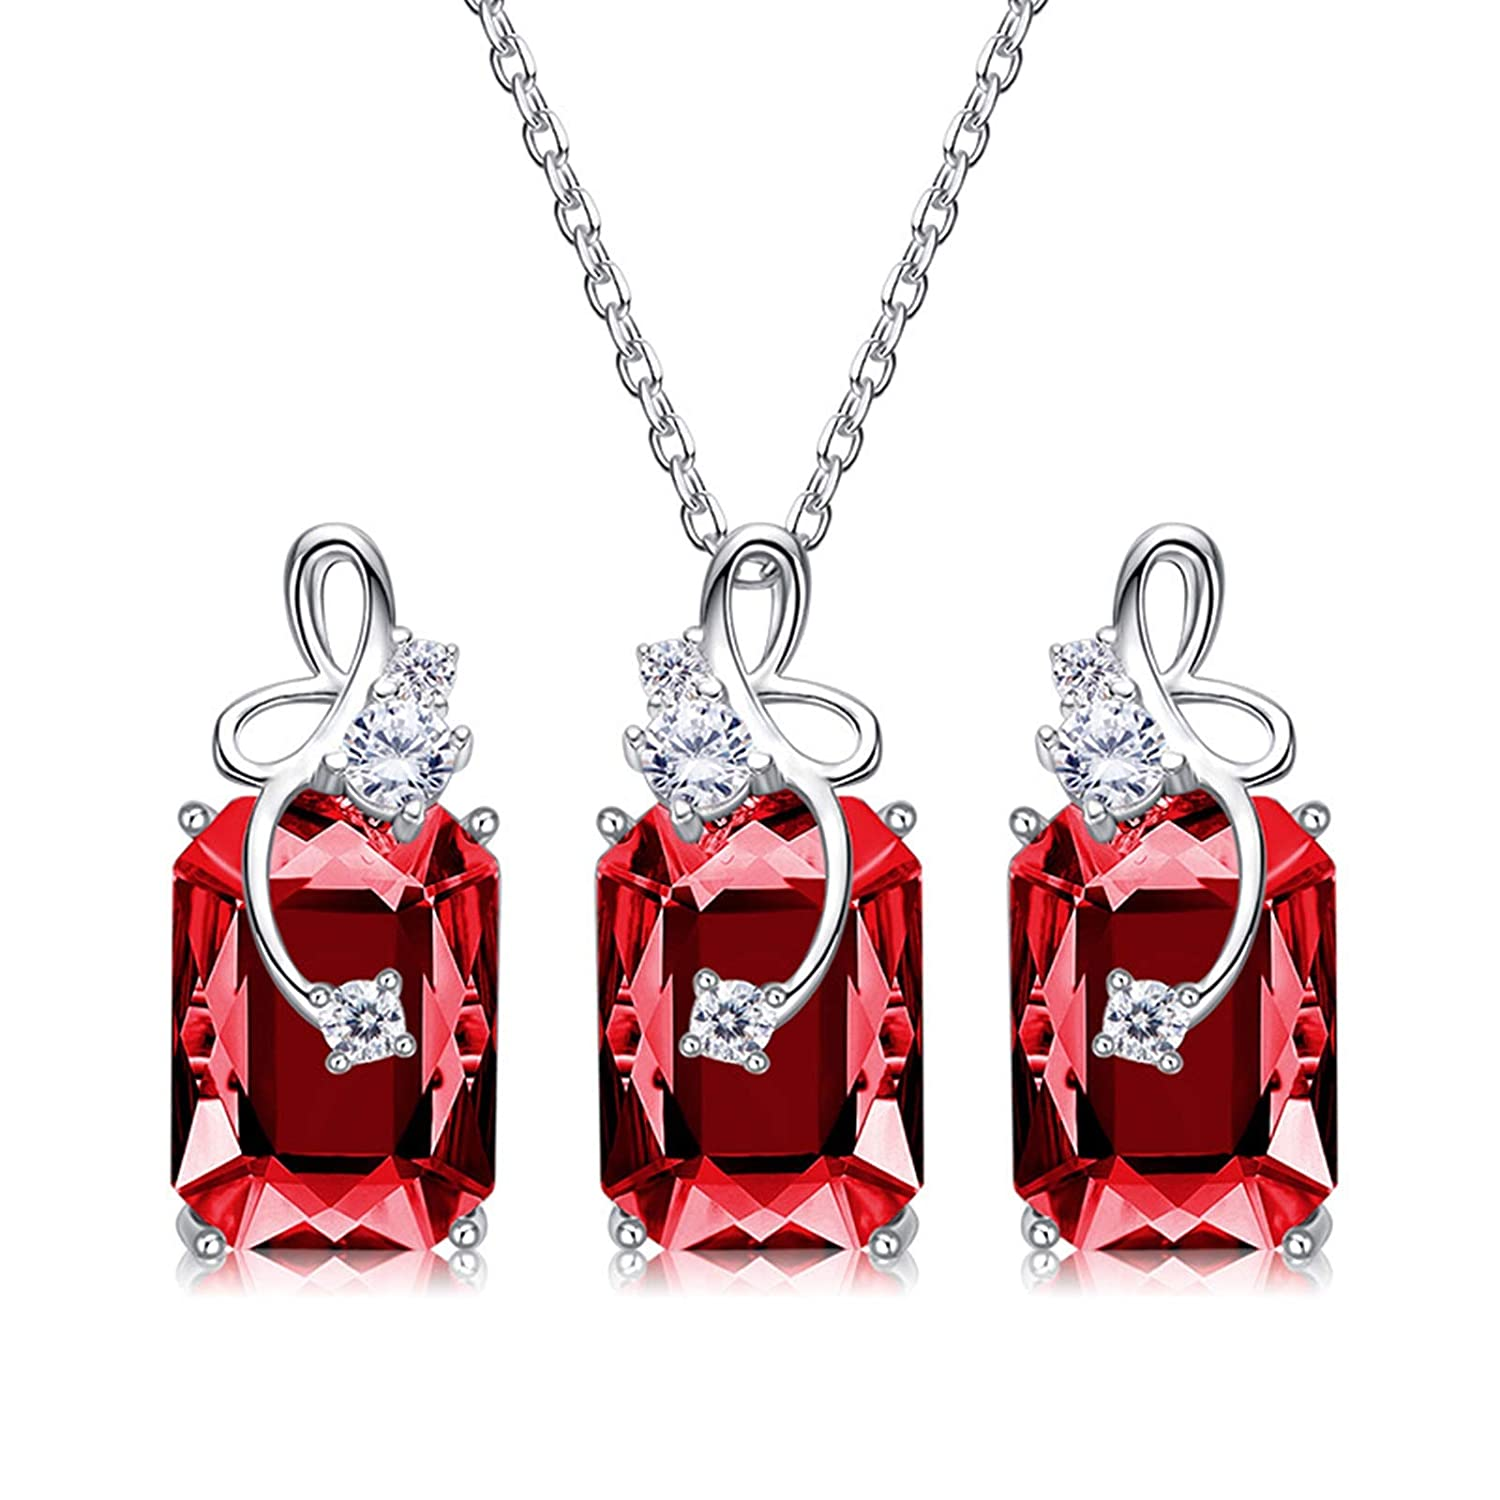 MoAndy S.W.A Crystal Necklace Chain Earrings Stud S925 Silver Bow Cluster Jewelry Set Gifts Wedding